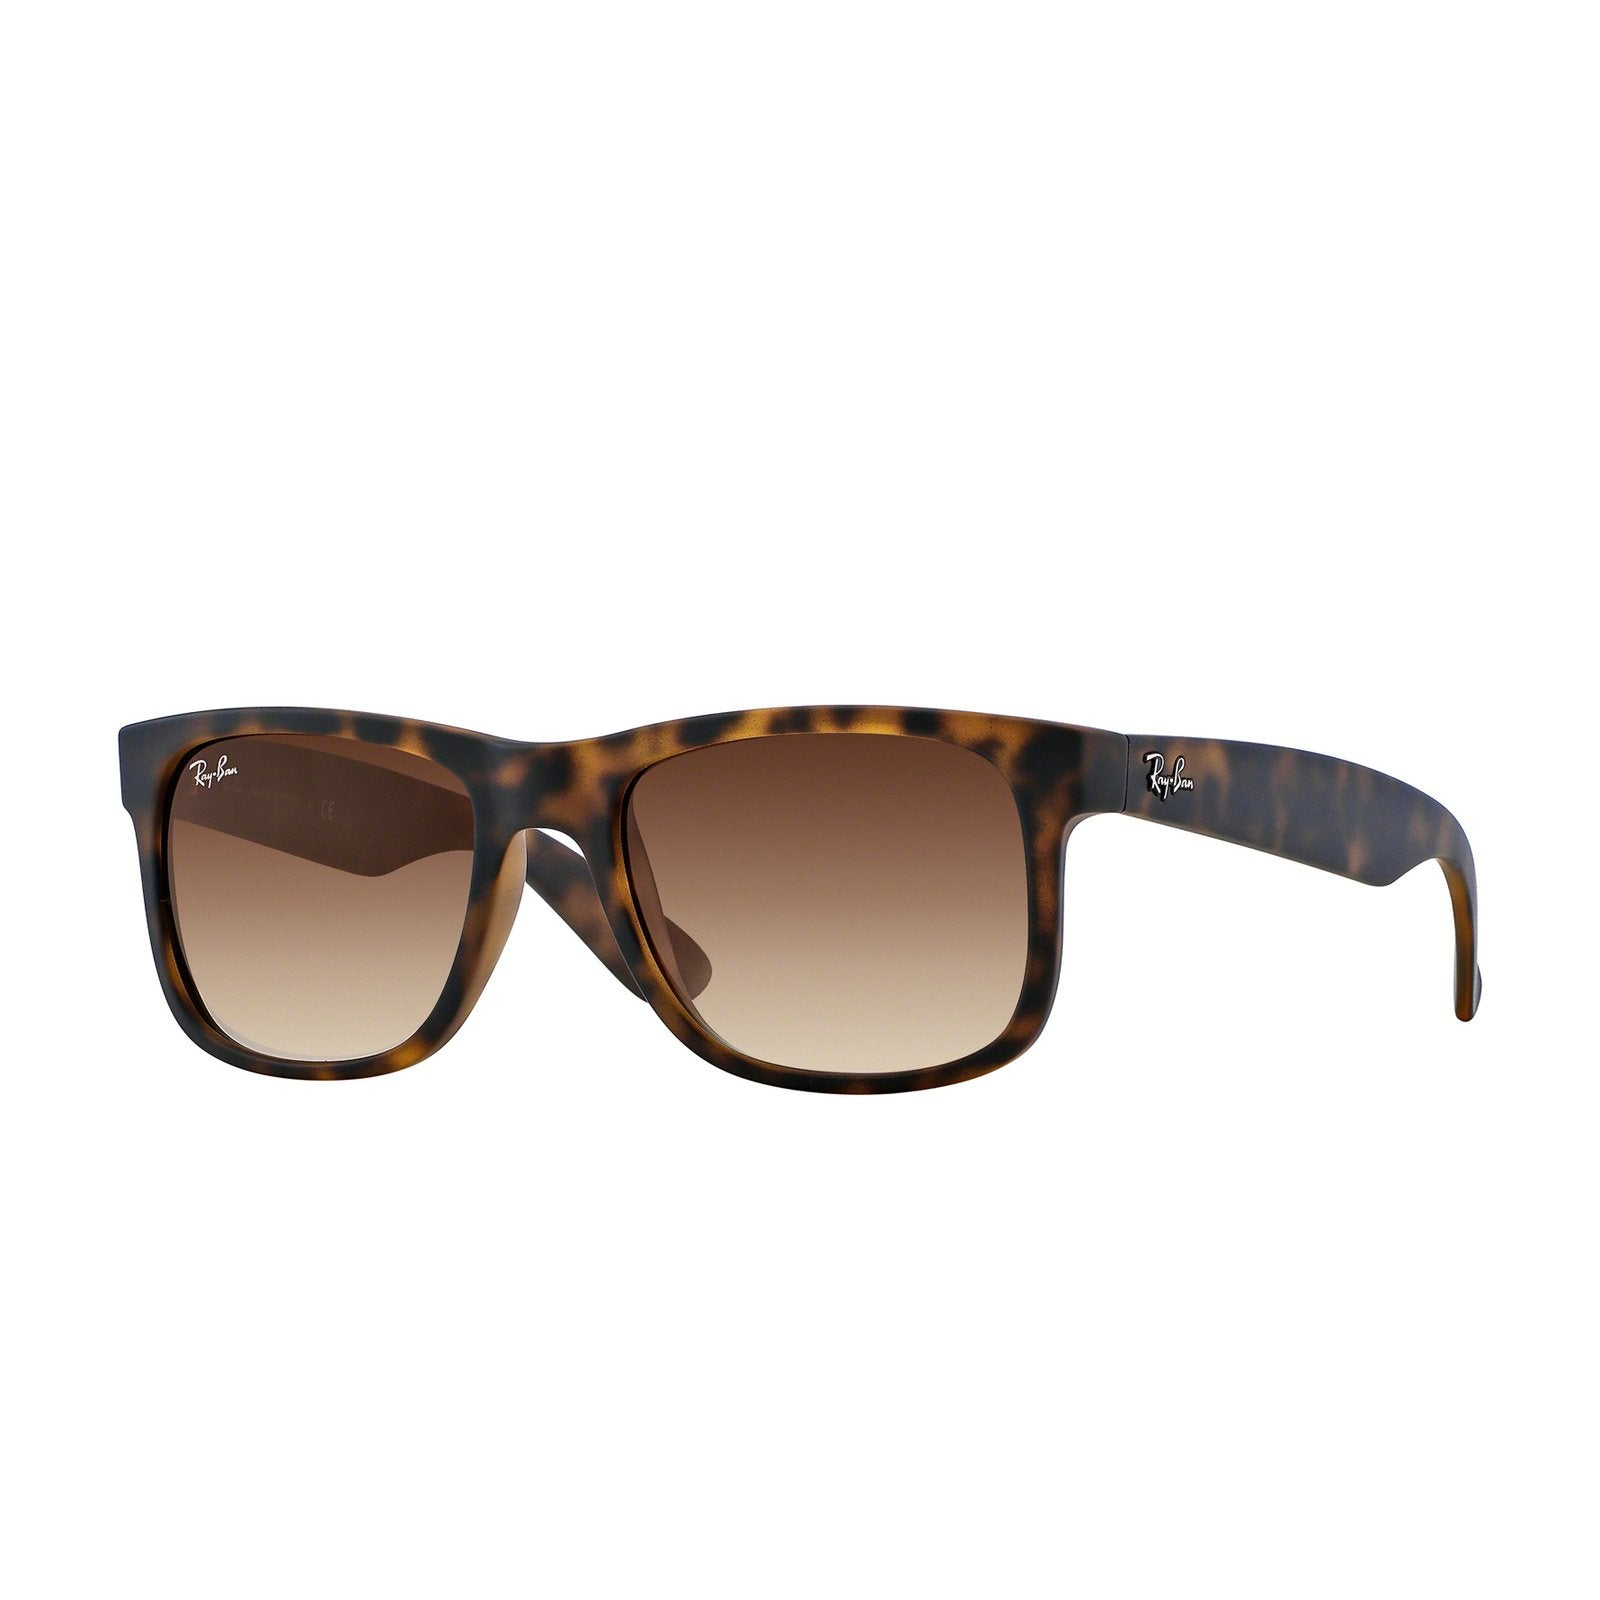 Ray-Ban RB4165 710/13 Sunglasses